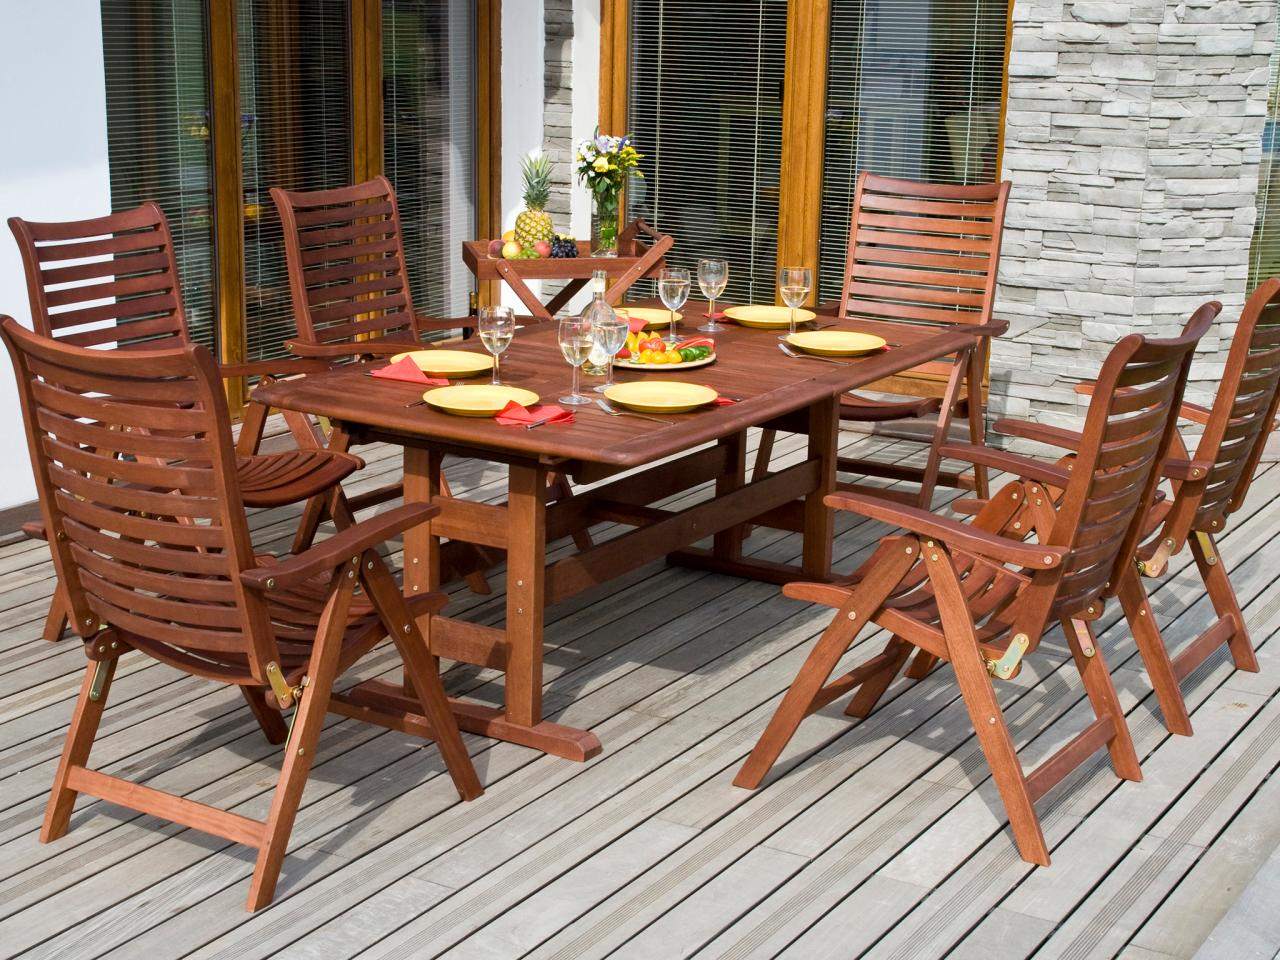 Tips for Refinishing Wooden Outdoor Furniture. 8 Essential Wood Refinishing Tools and Supplies   DIY